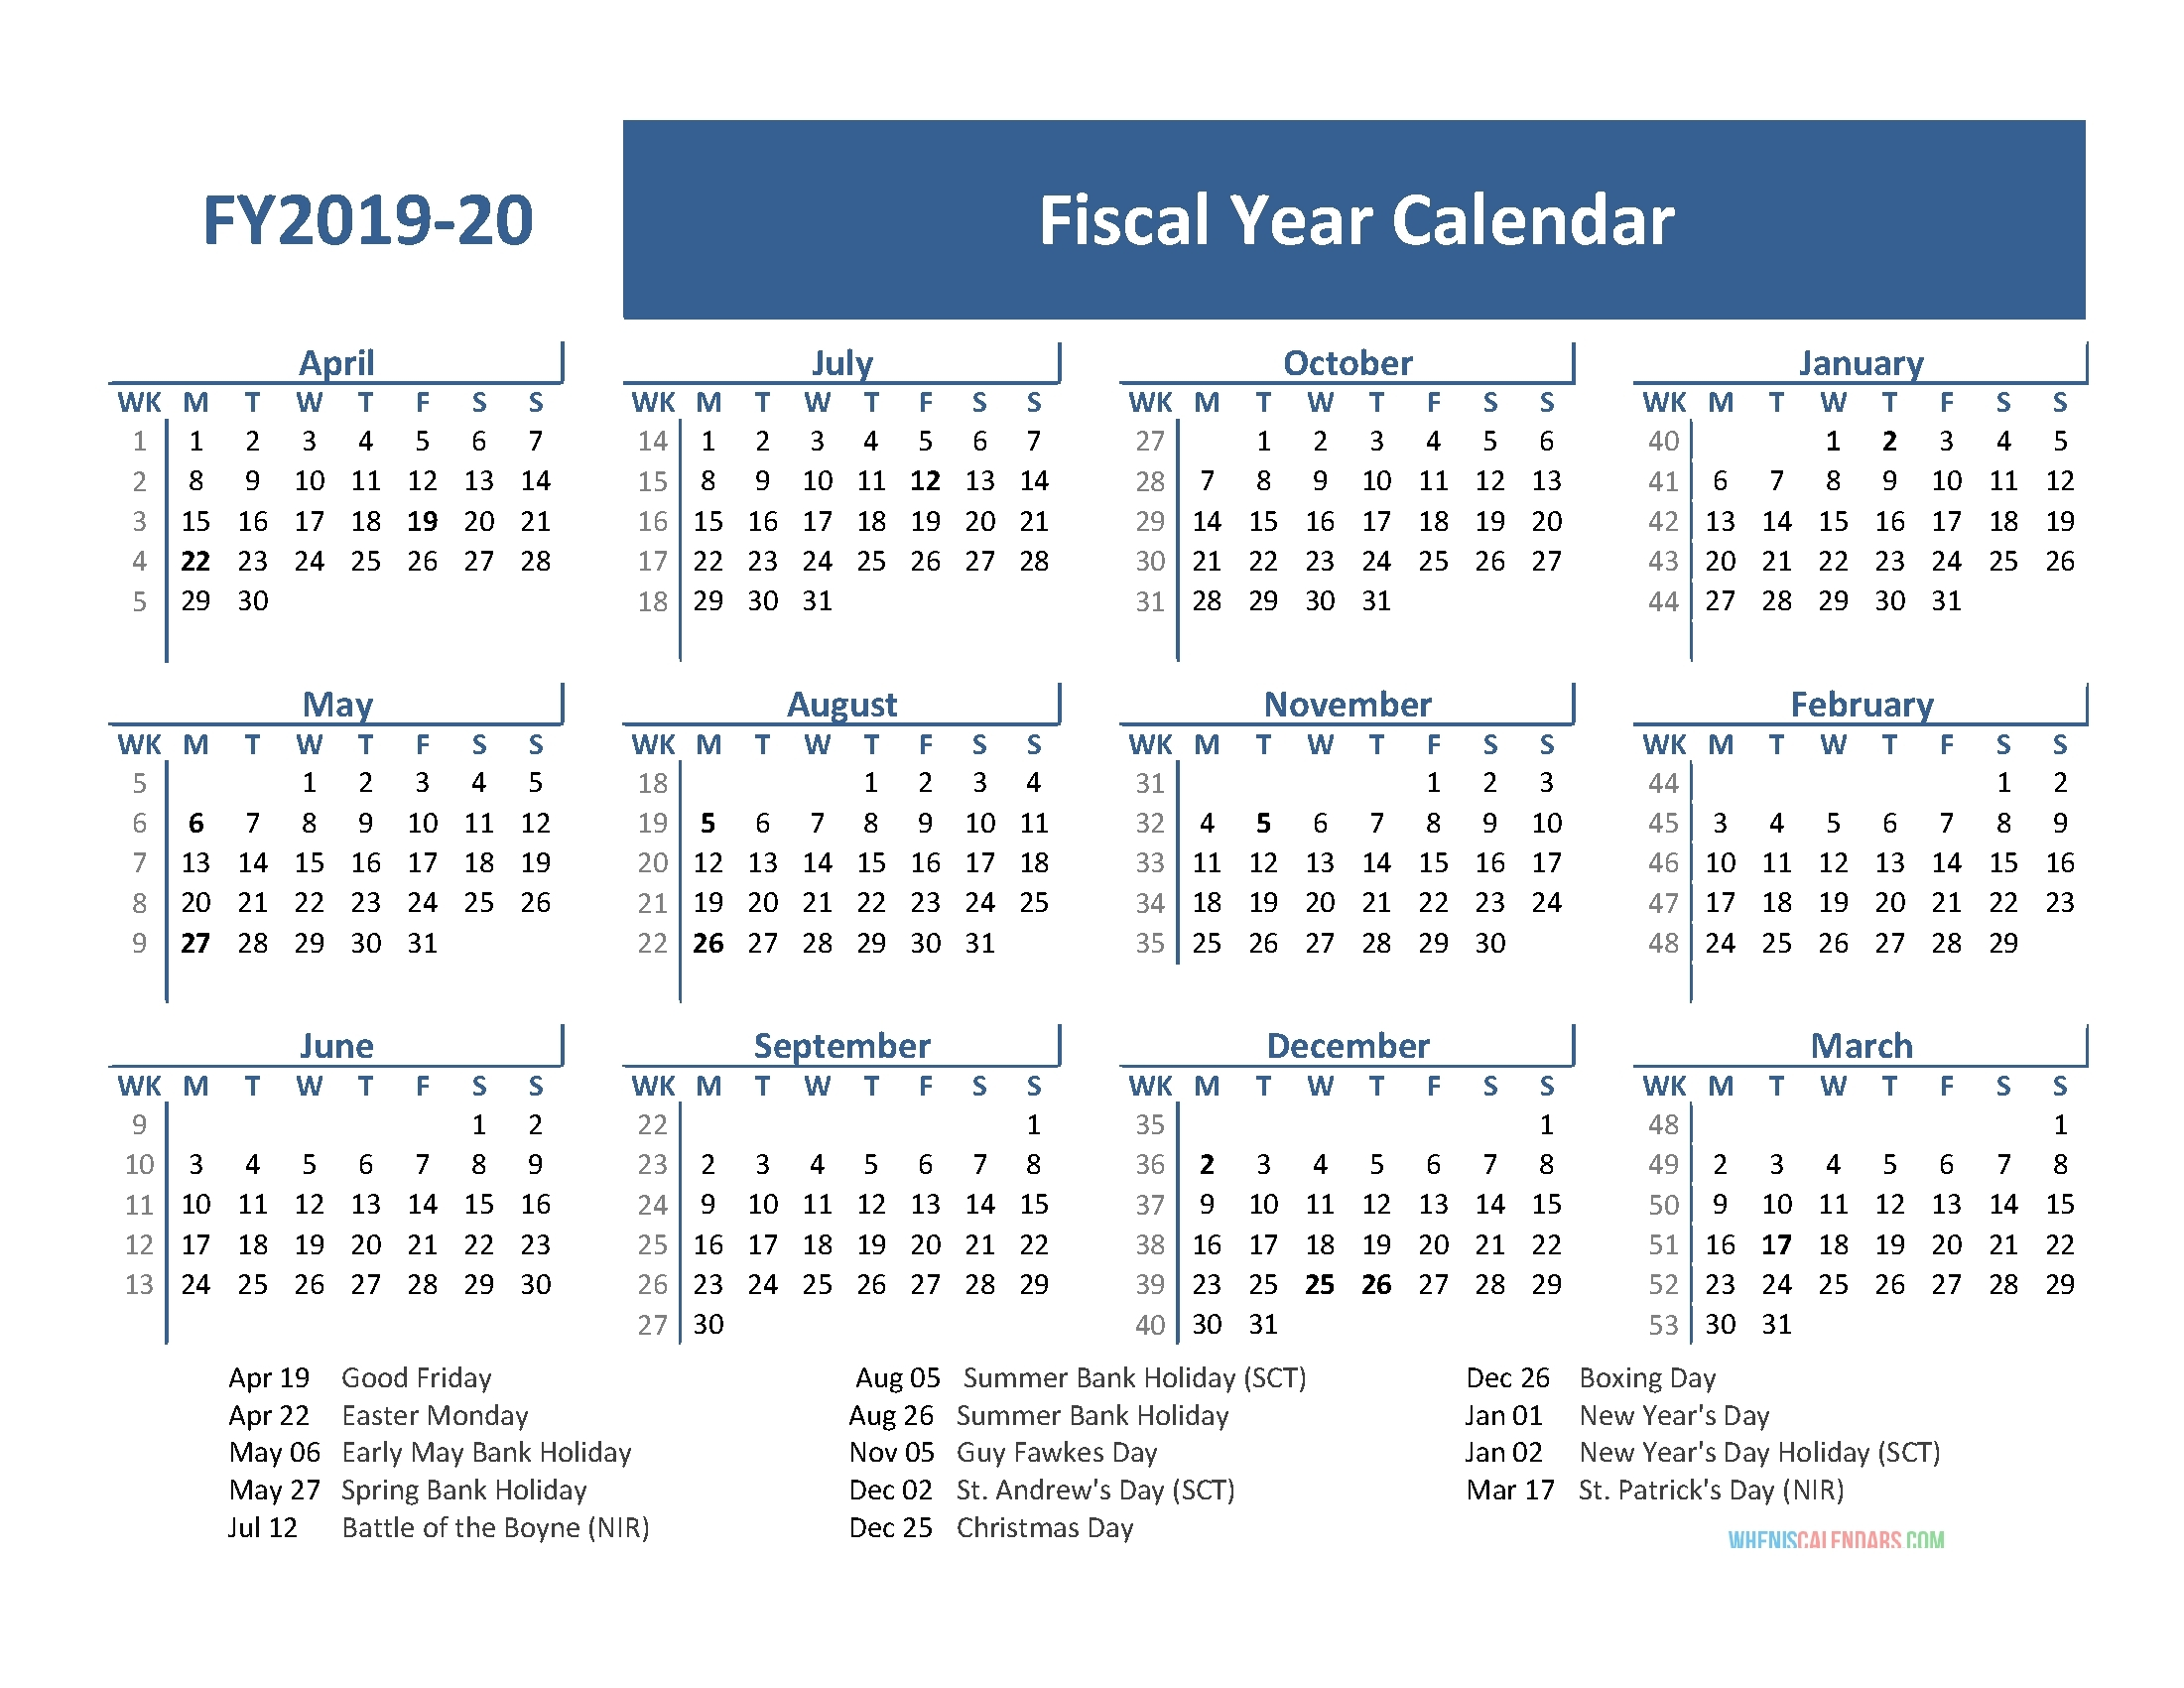 2019-2020 Calendar Financial Week Numbers - Calendar throughout Which Week In Fincnaicl Calendar Is It